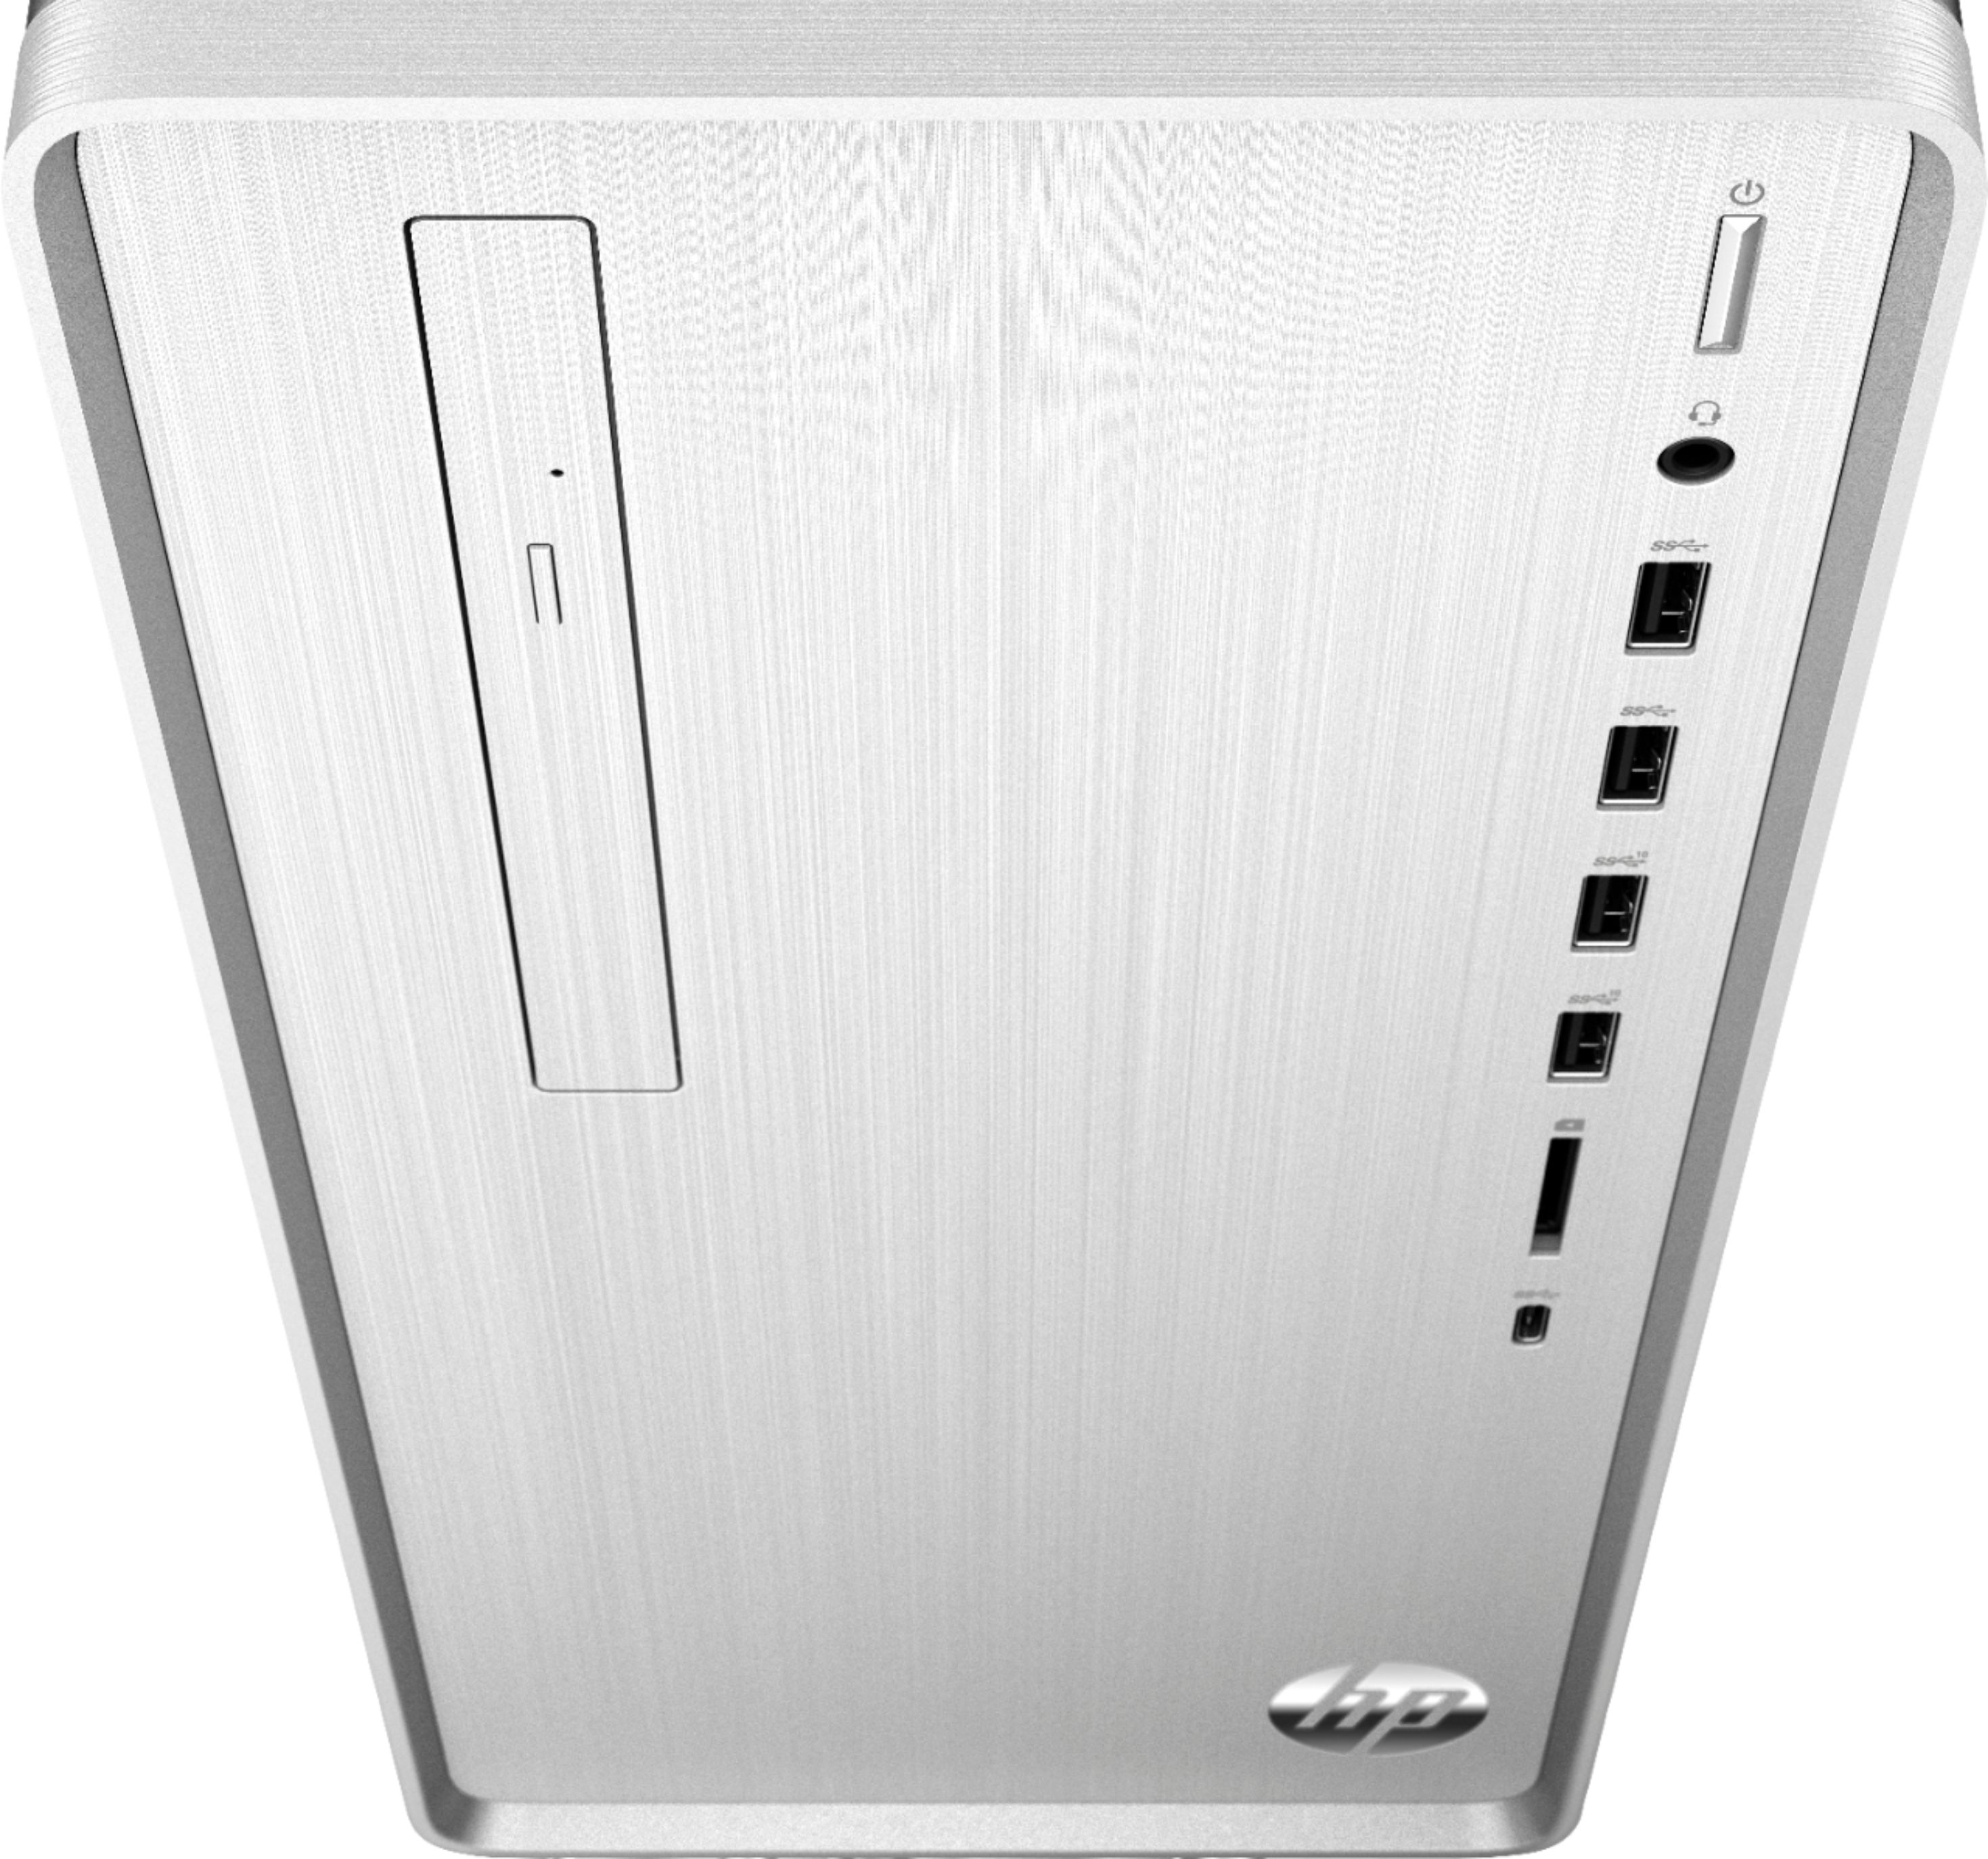 Alt View Zoom 12. Pavilion Desktop - Intel Core i7 - 8GB Memory - 256GB SSD - HP Finish In Natural Silver.